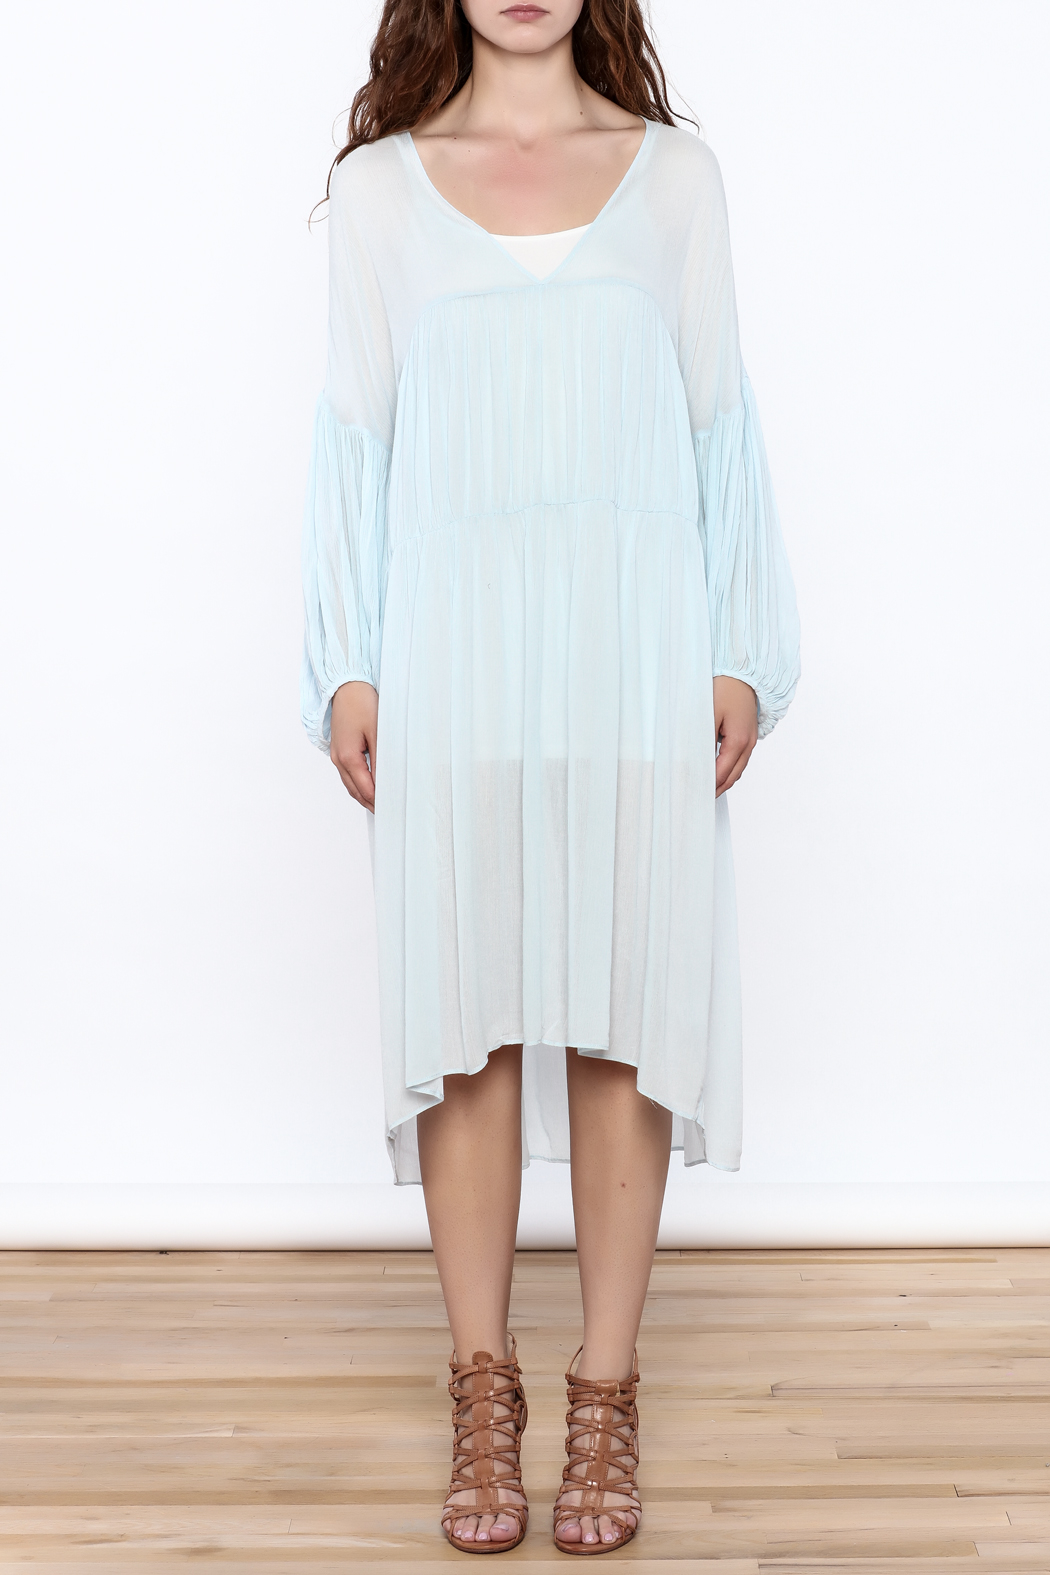 Ark & Co. Soft Blue Genie Dress - Front Cropped Image